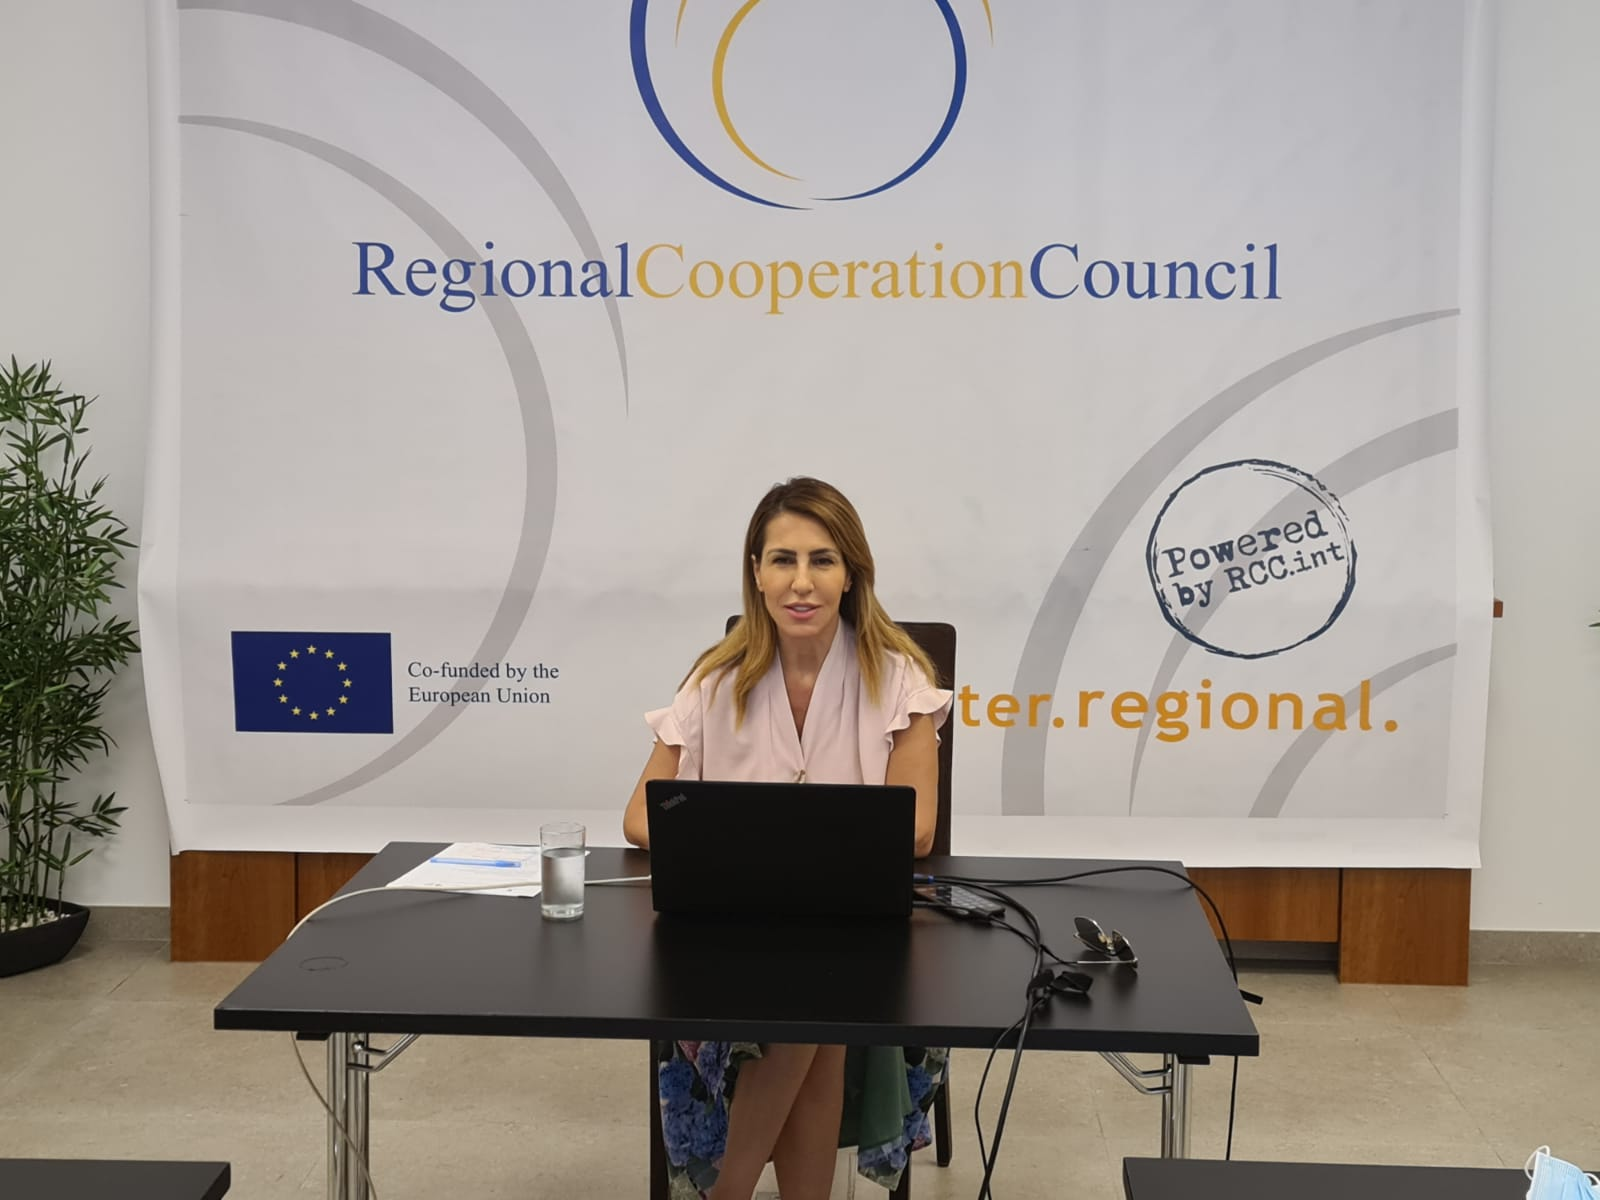 RCC Secretary General Majlinda Bregu at the Ministerial meeting on Roma Integration which took place in Sarajevo on 28 June 2021 (Photo: RCC/Armin Durgut)